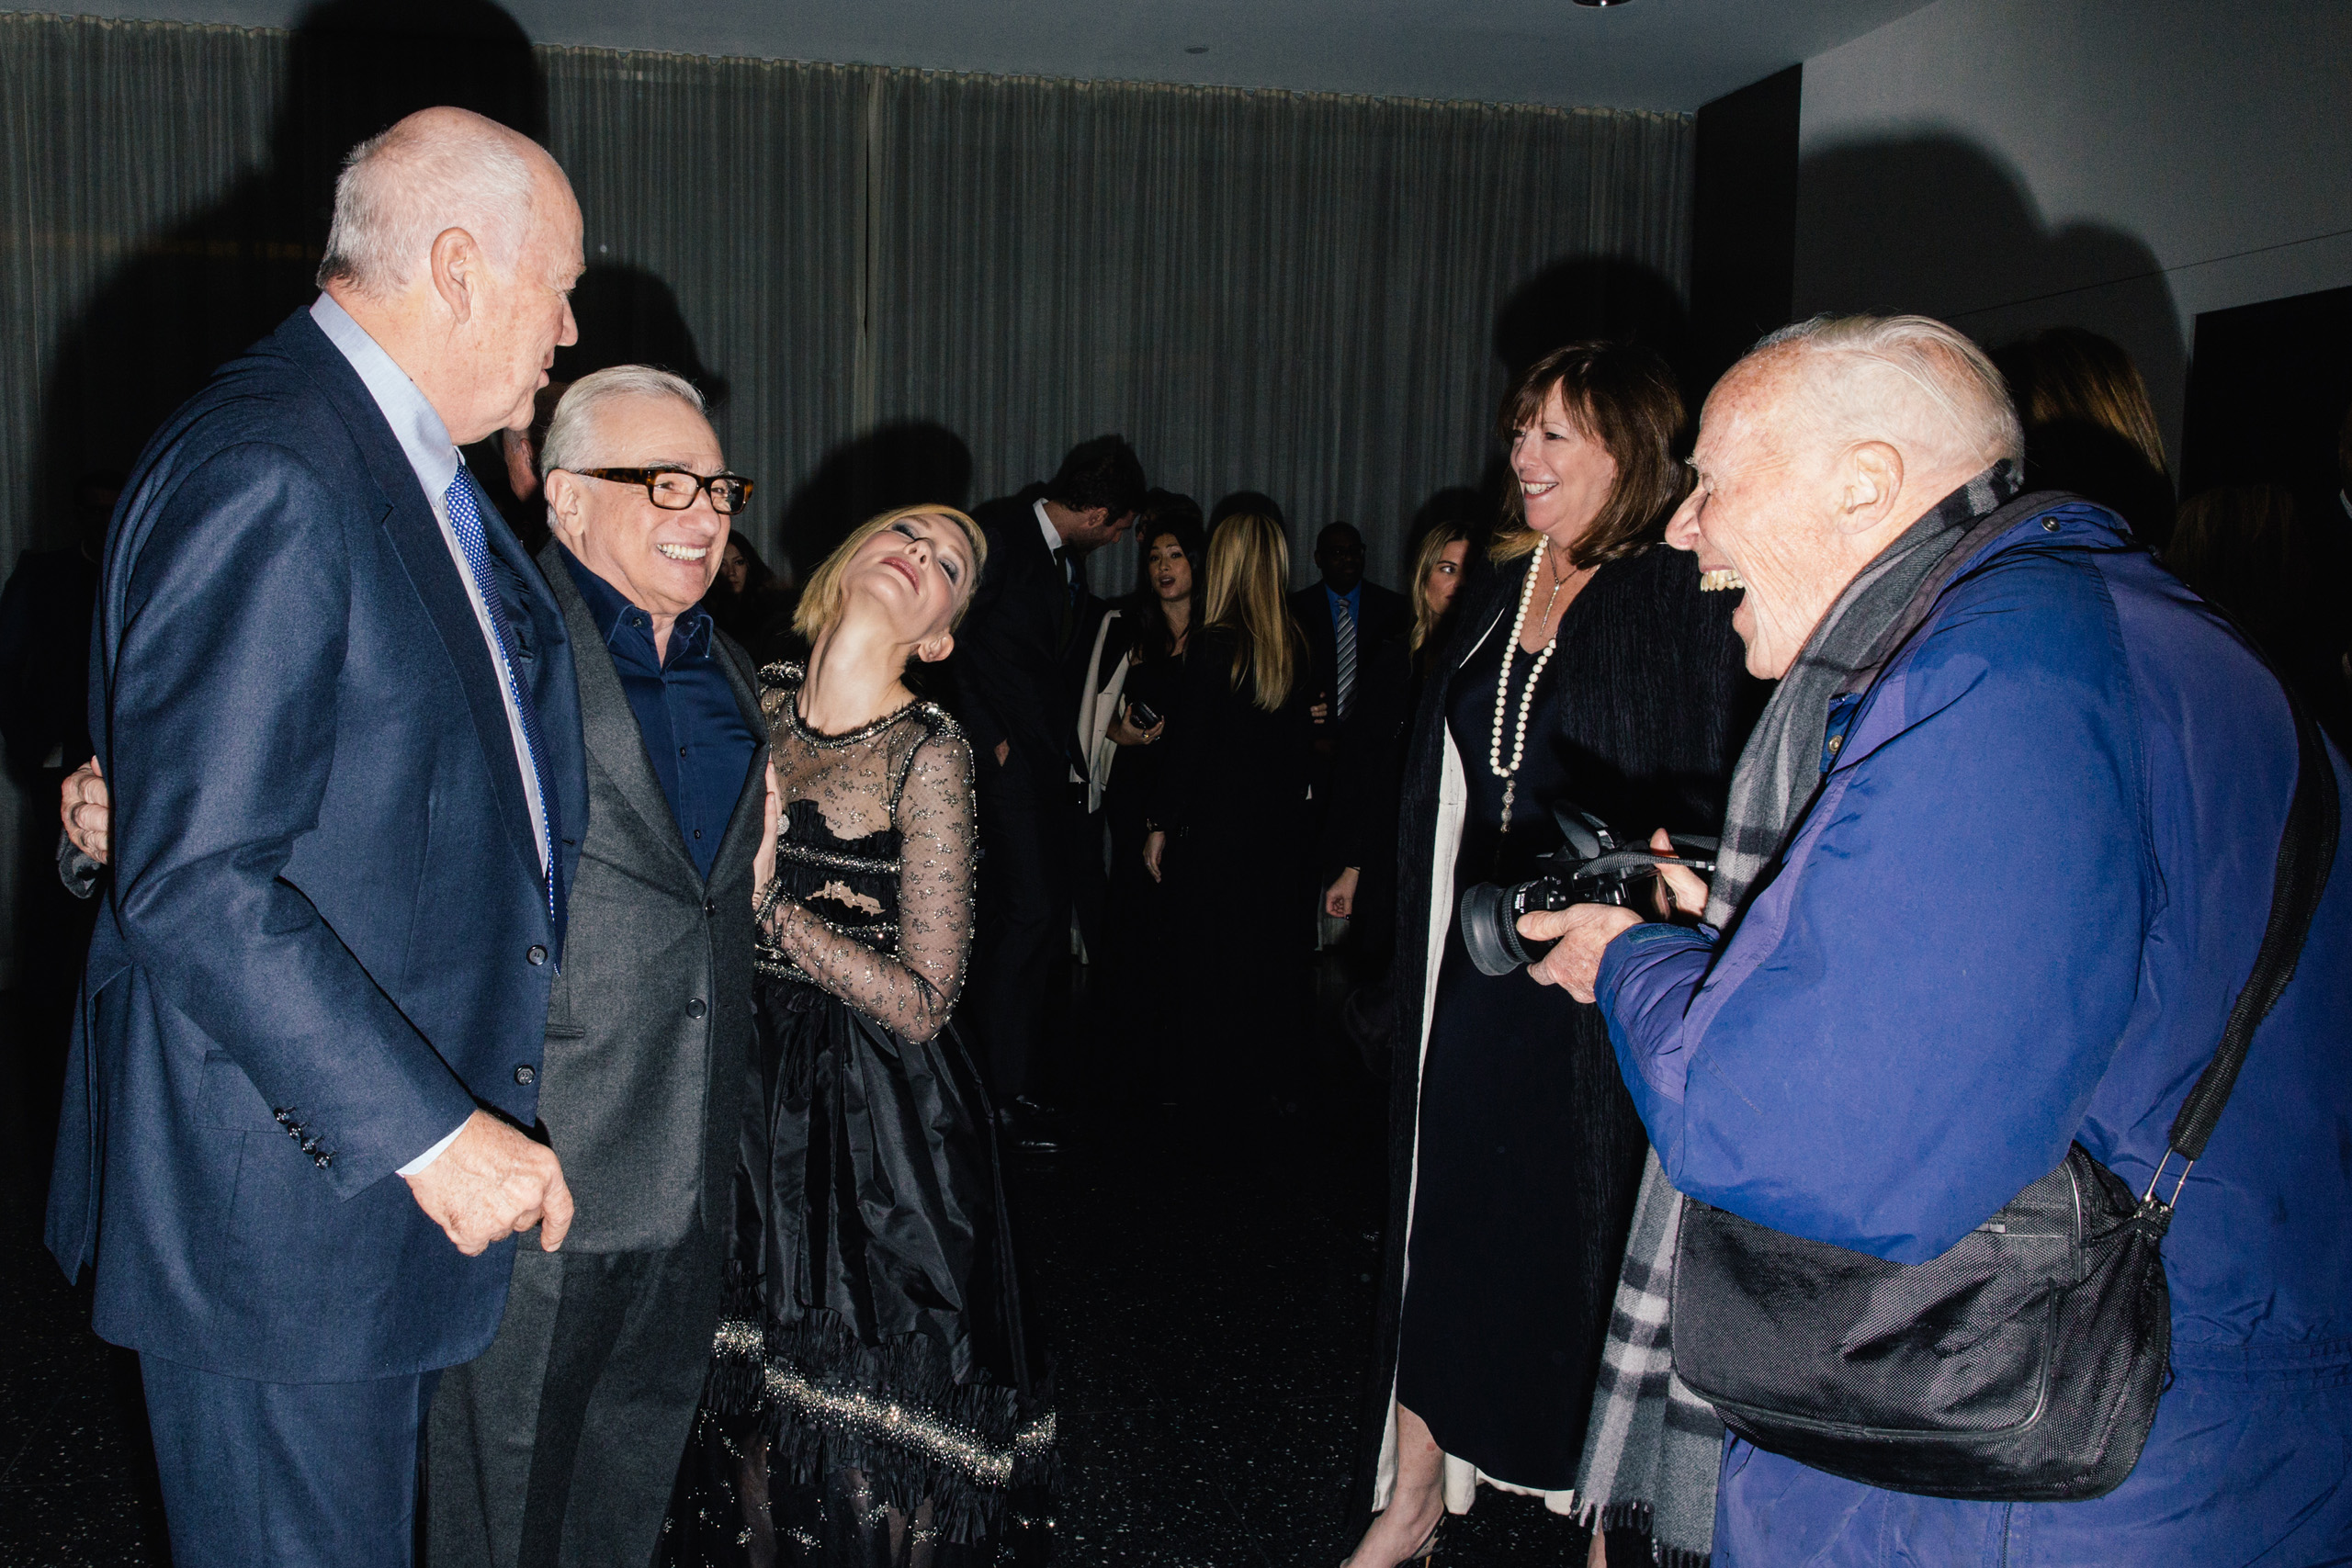 Director Martin Scorsese and actress Cate Blanchett pose for photographer Bill Cunningham at the Museum of Modern Art Film Benefit's Tribute to Cate Blanchett at MoMA in New York City on Nov. 17, 2015.